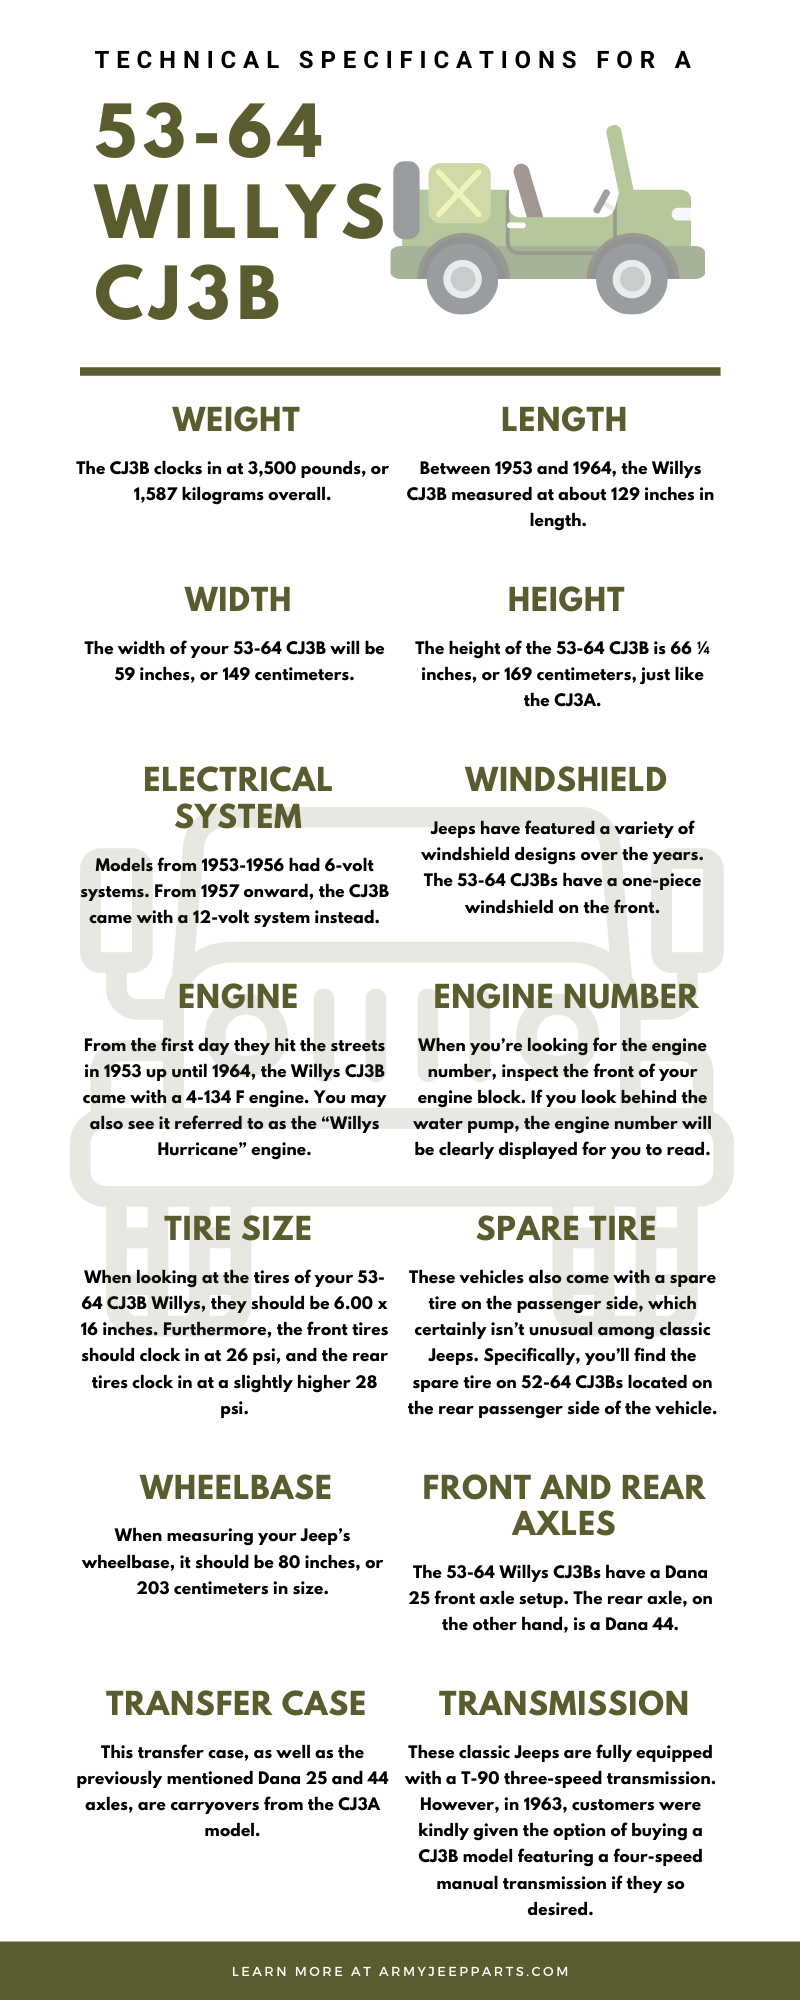 Technical Specifications for a 53-64 Willys CJ3B